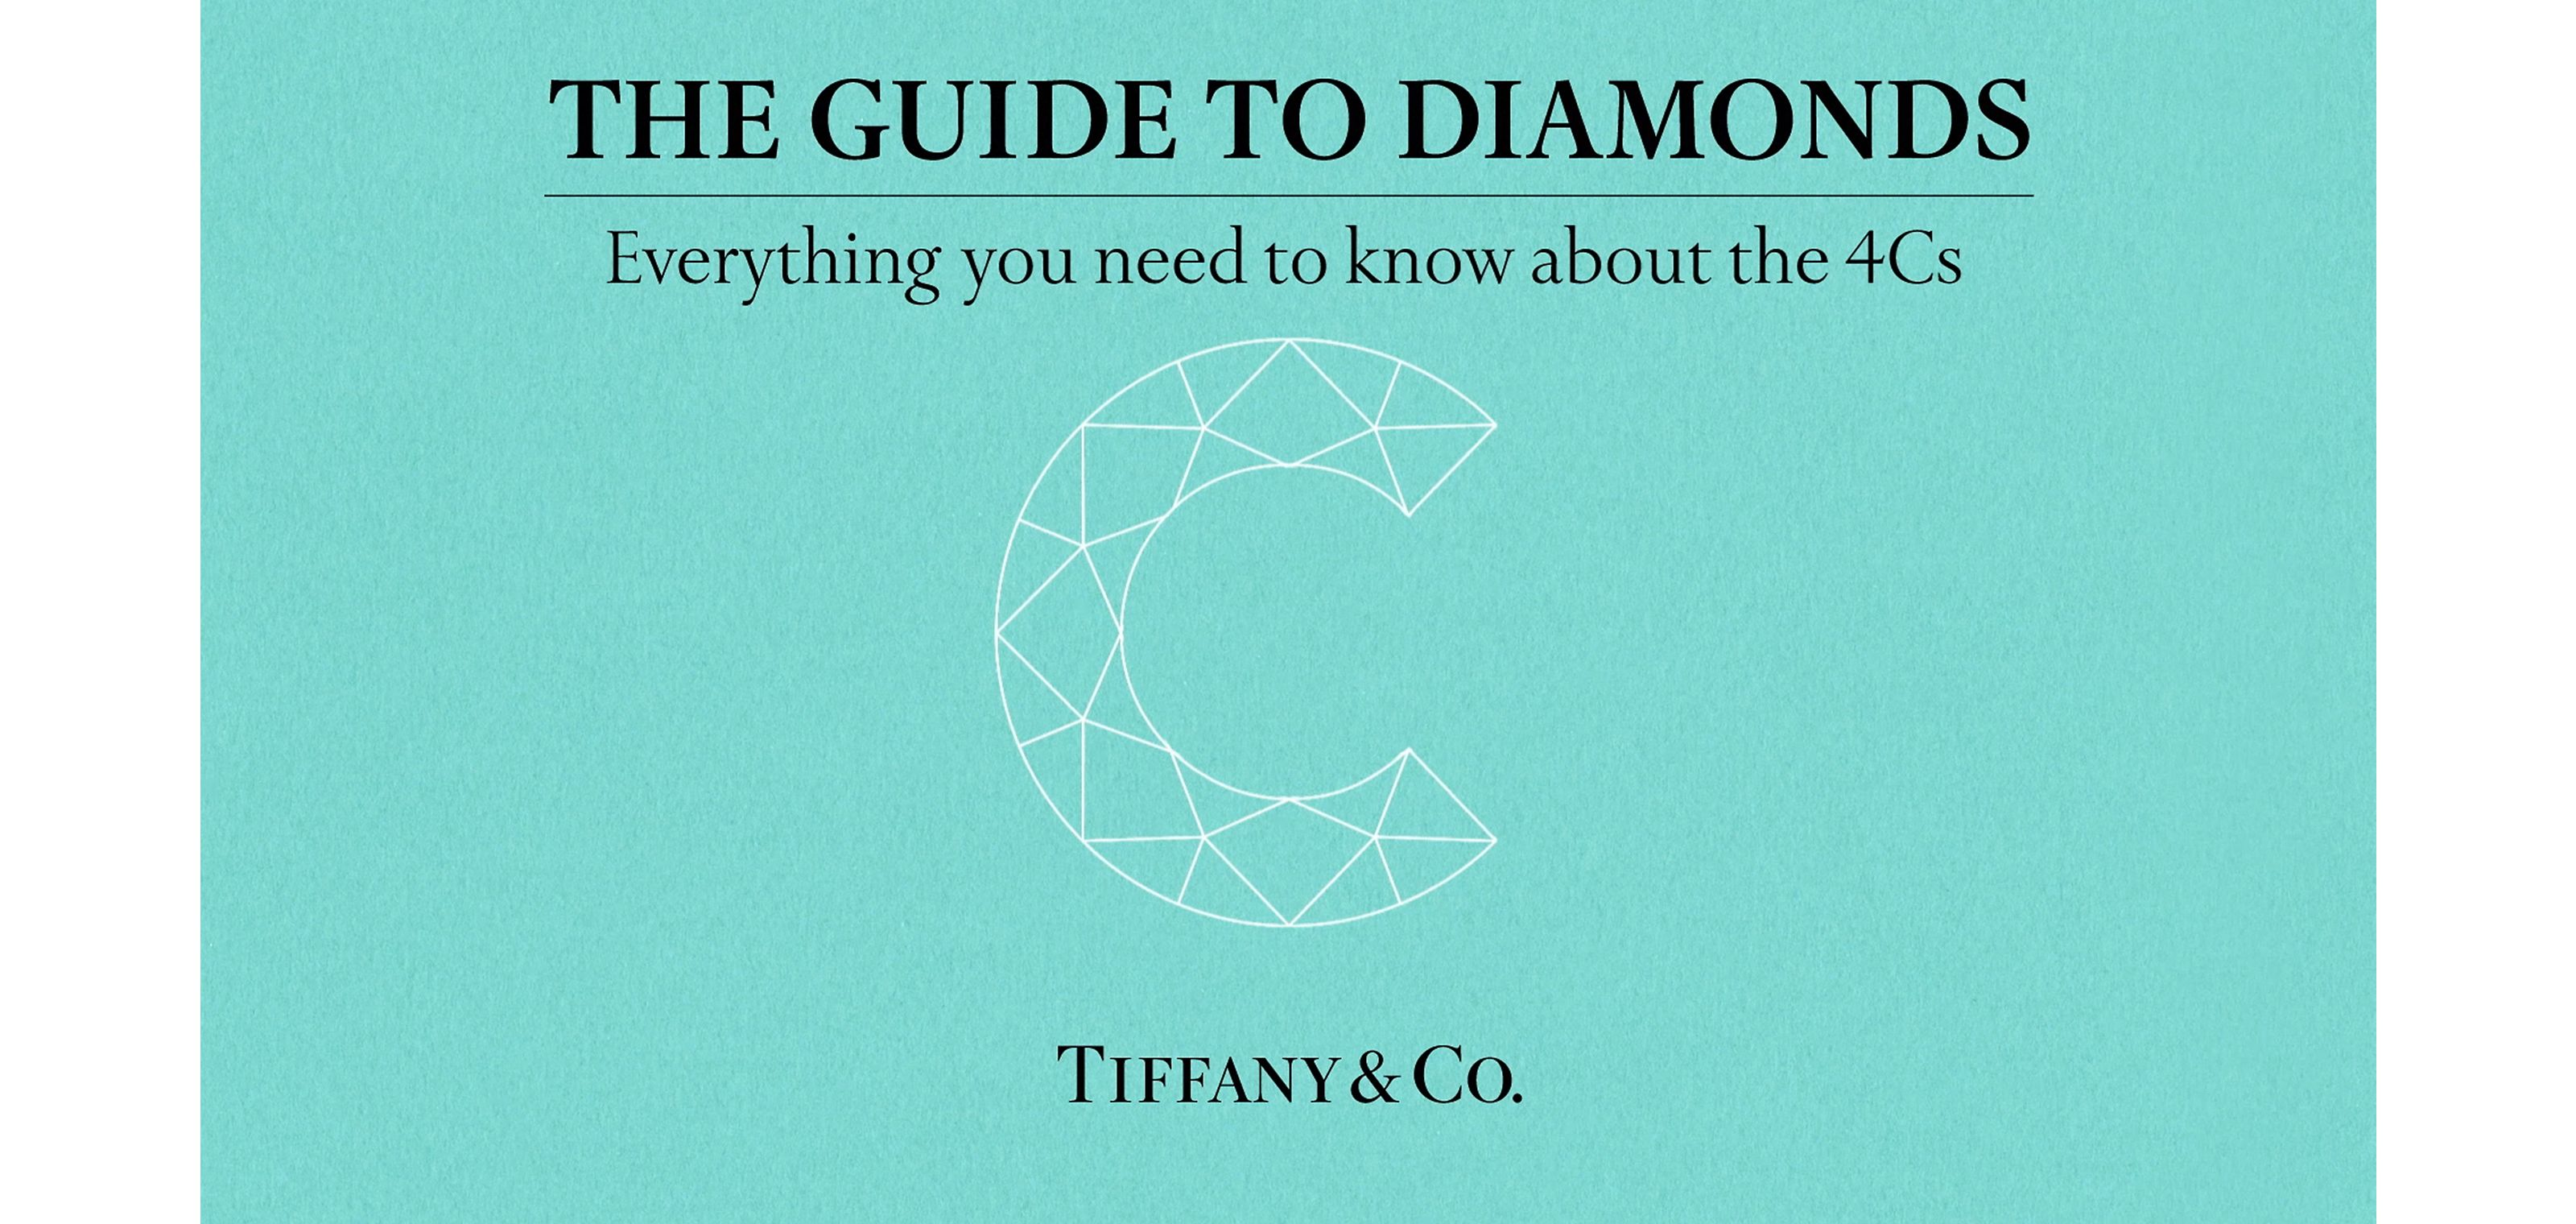 Tiffany & Co. The Tiffany Guide to Diamonds